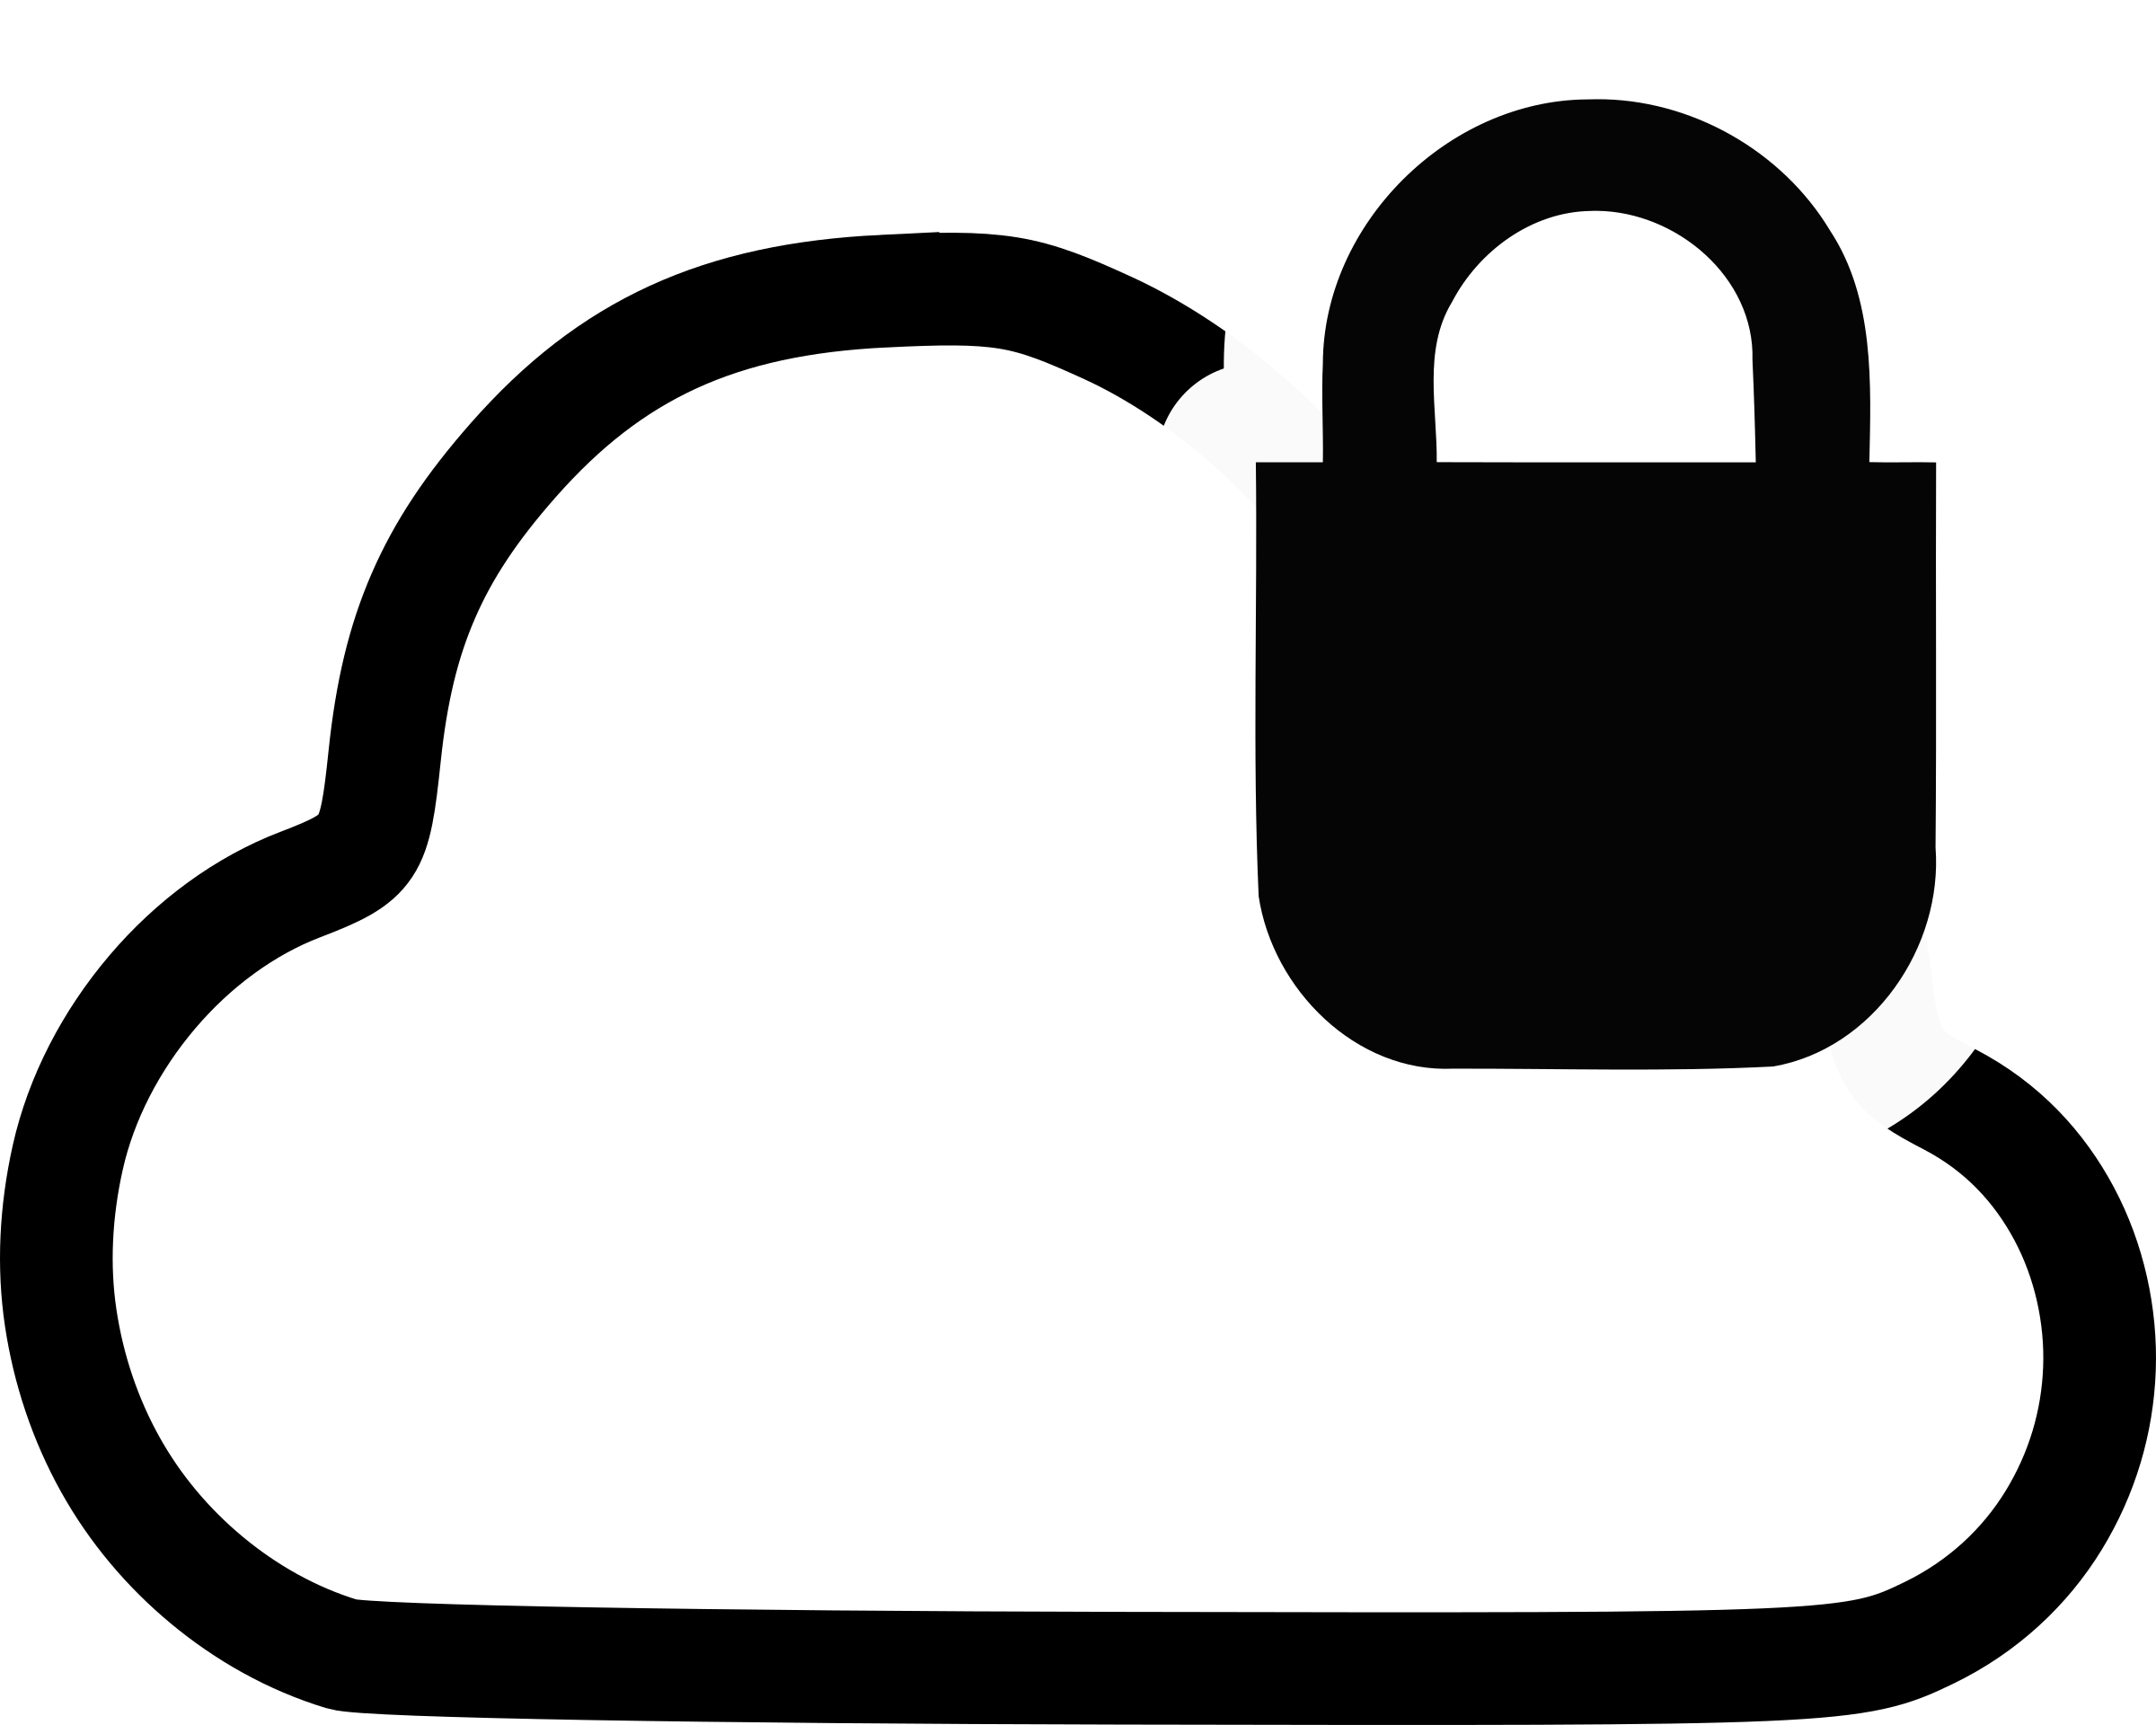 Clouds clipart logo. Secure cloud icons png